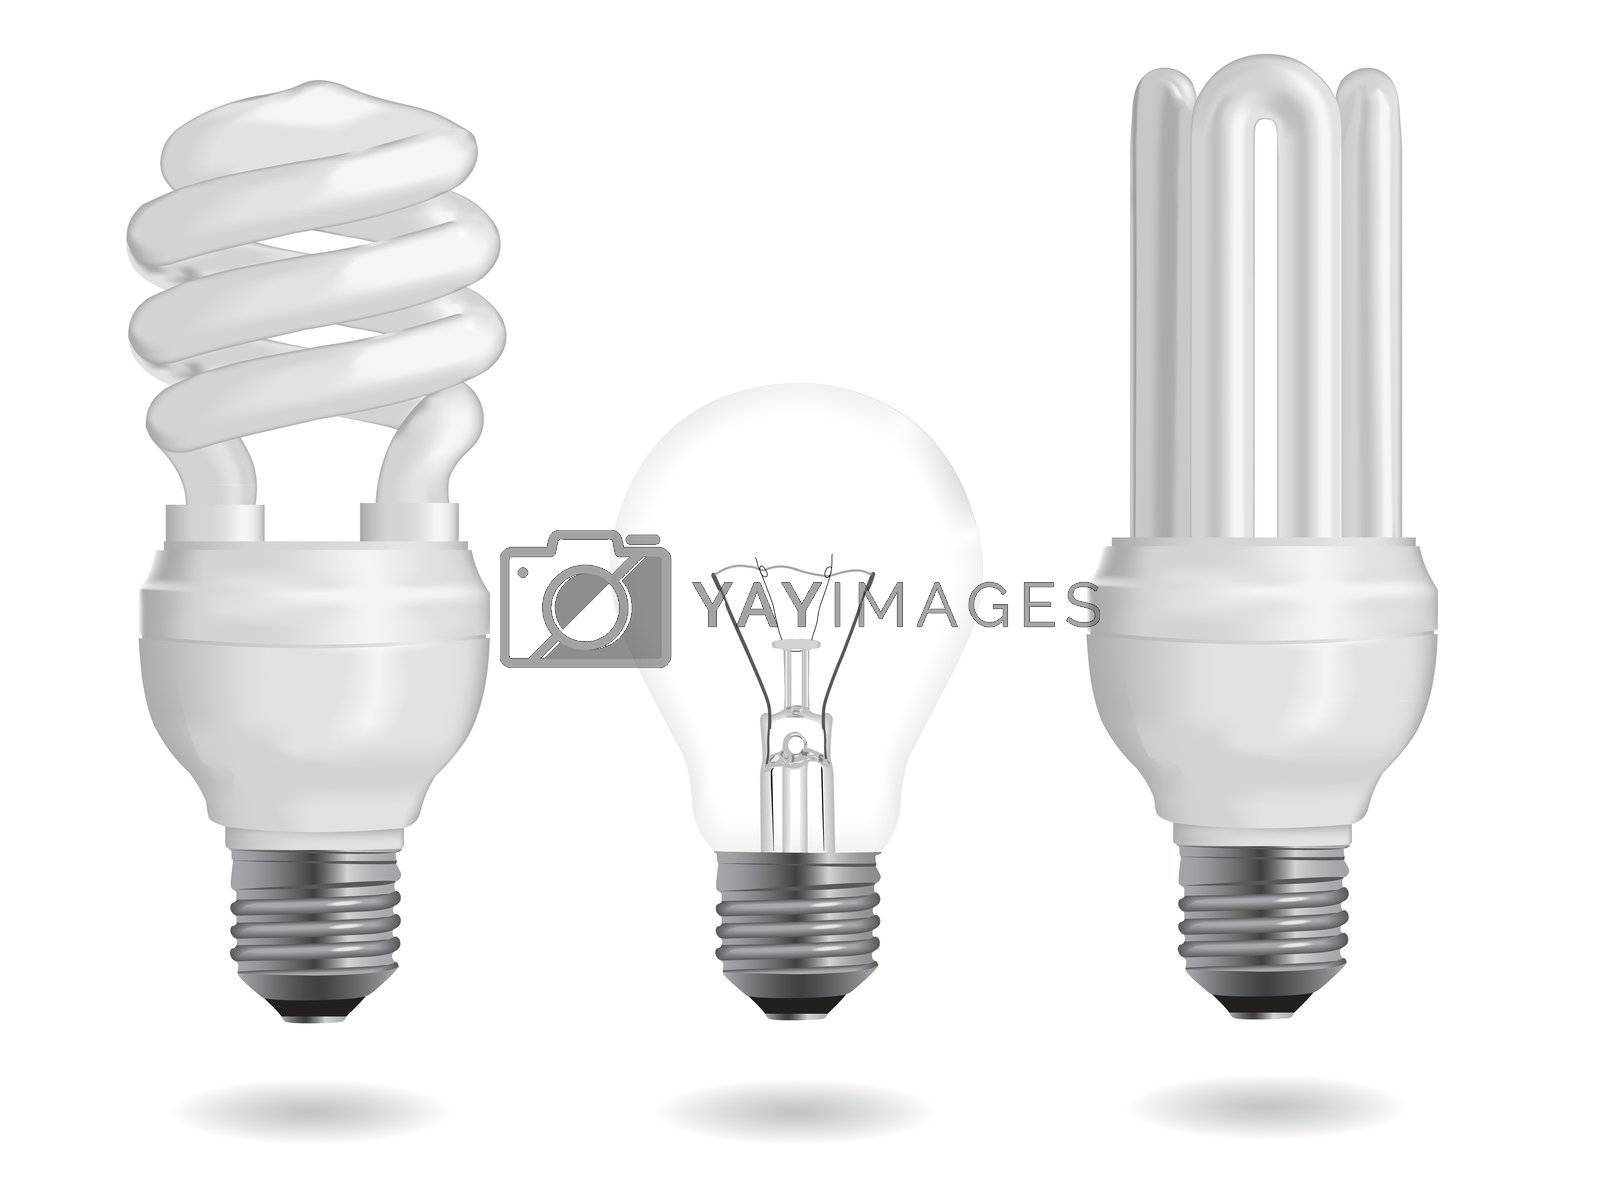 Incandescent and fluorescent energy efficiency light bulbs. Vector Illustration.